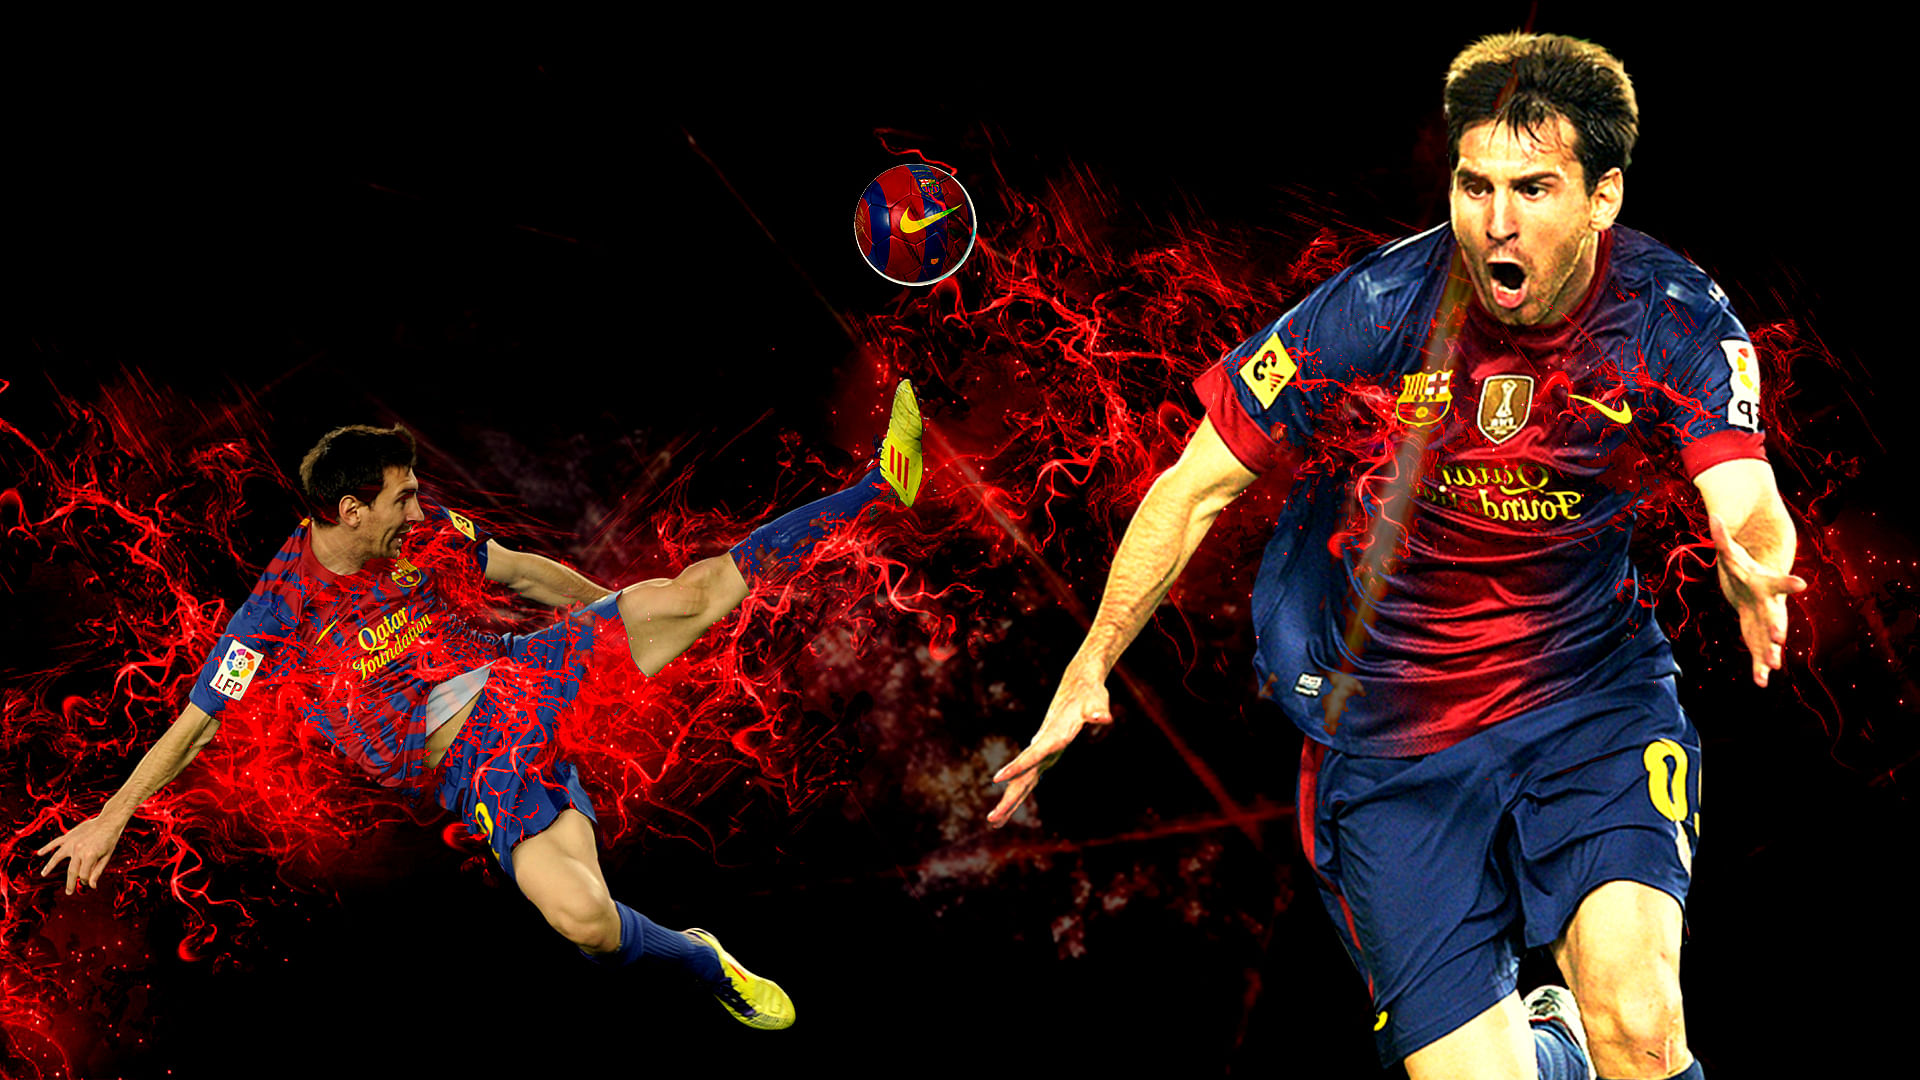 Lionel Messi Full Size Hd: Lionel Messi HD Wallpapers